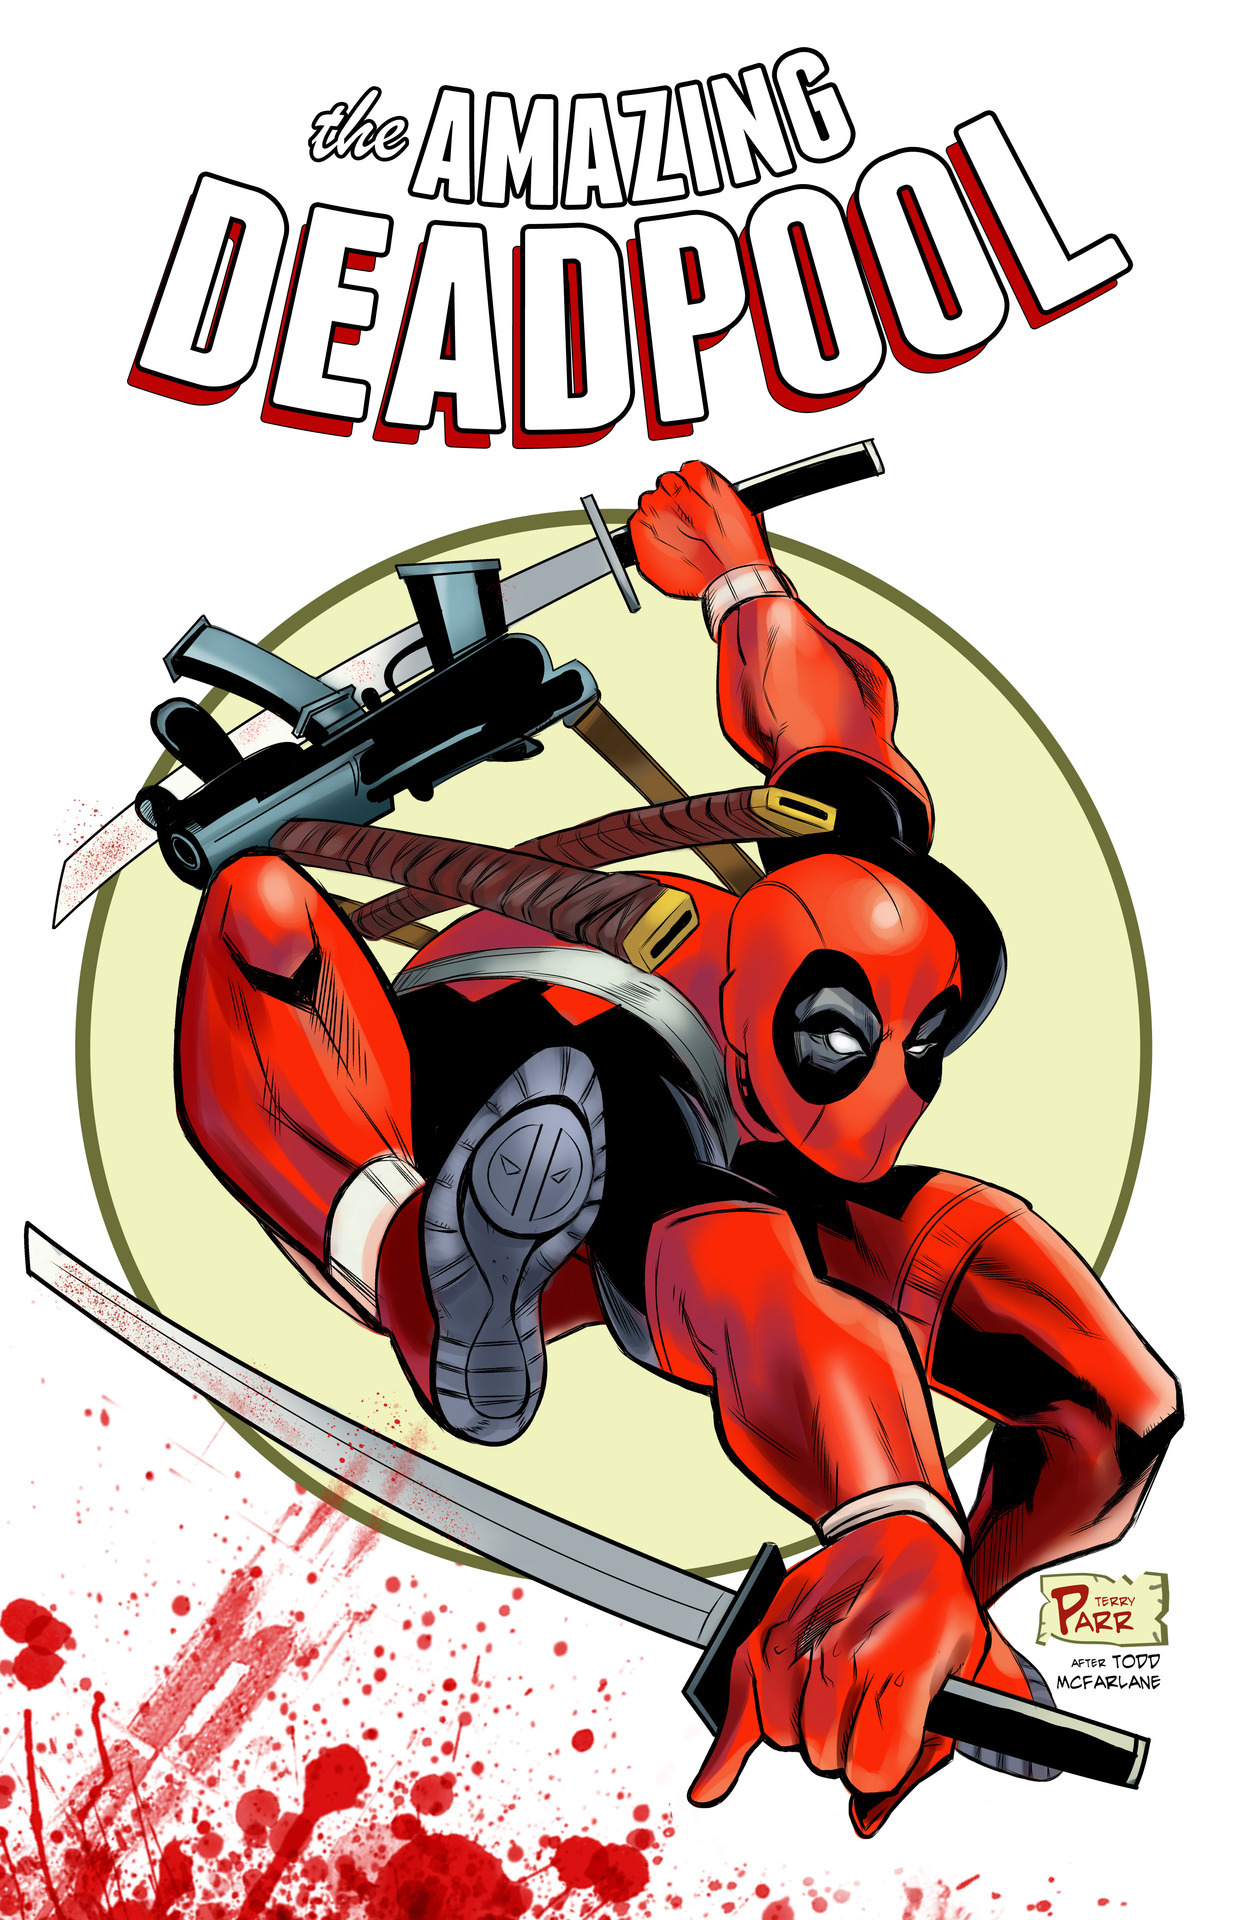 The Amazing Deadpool! Tribute to todd mcfarlane and Rob Liefeld, by Terry Parr.